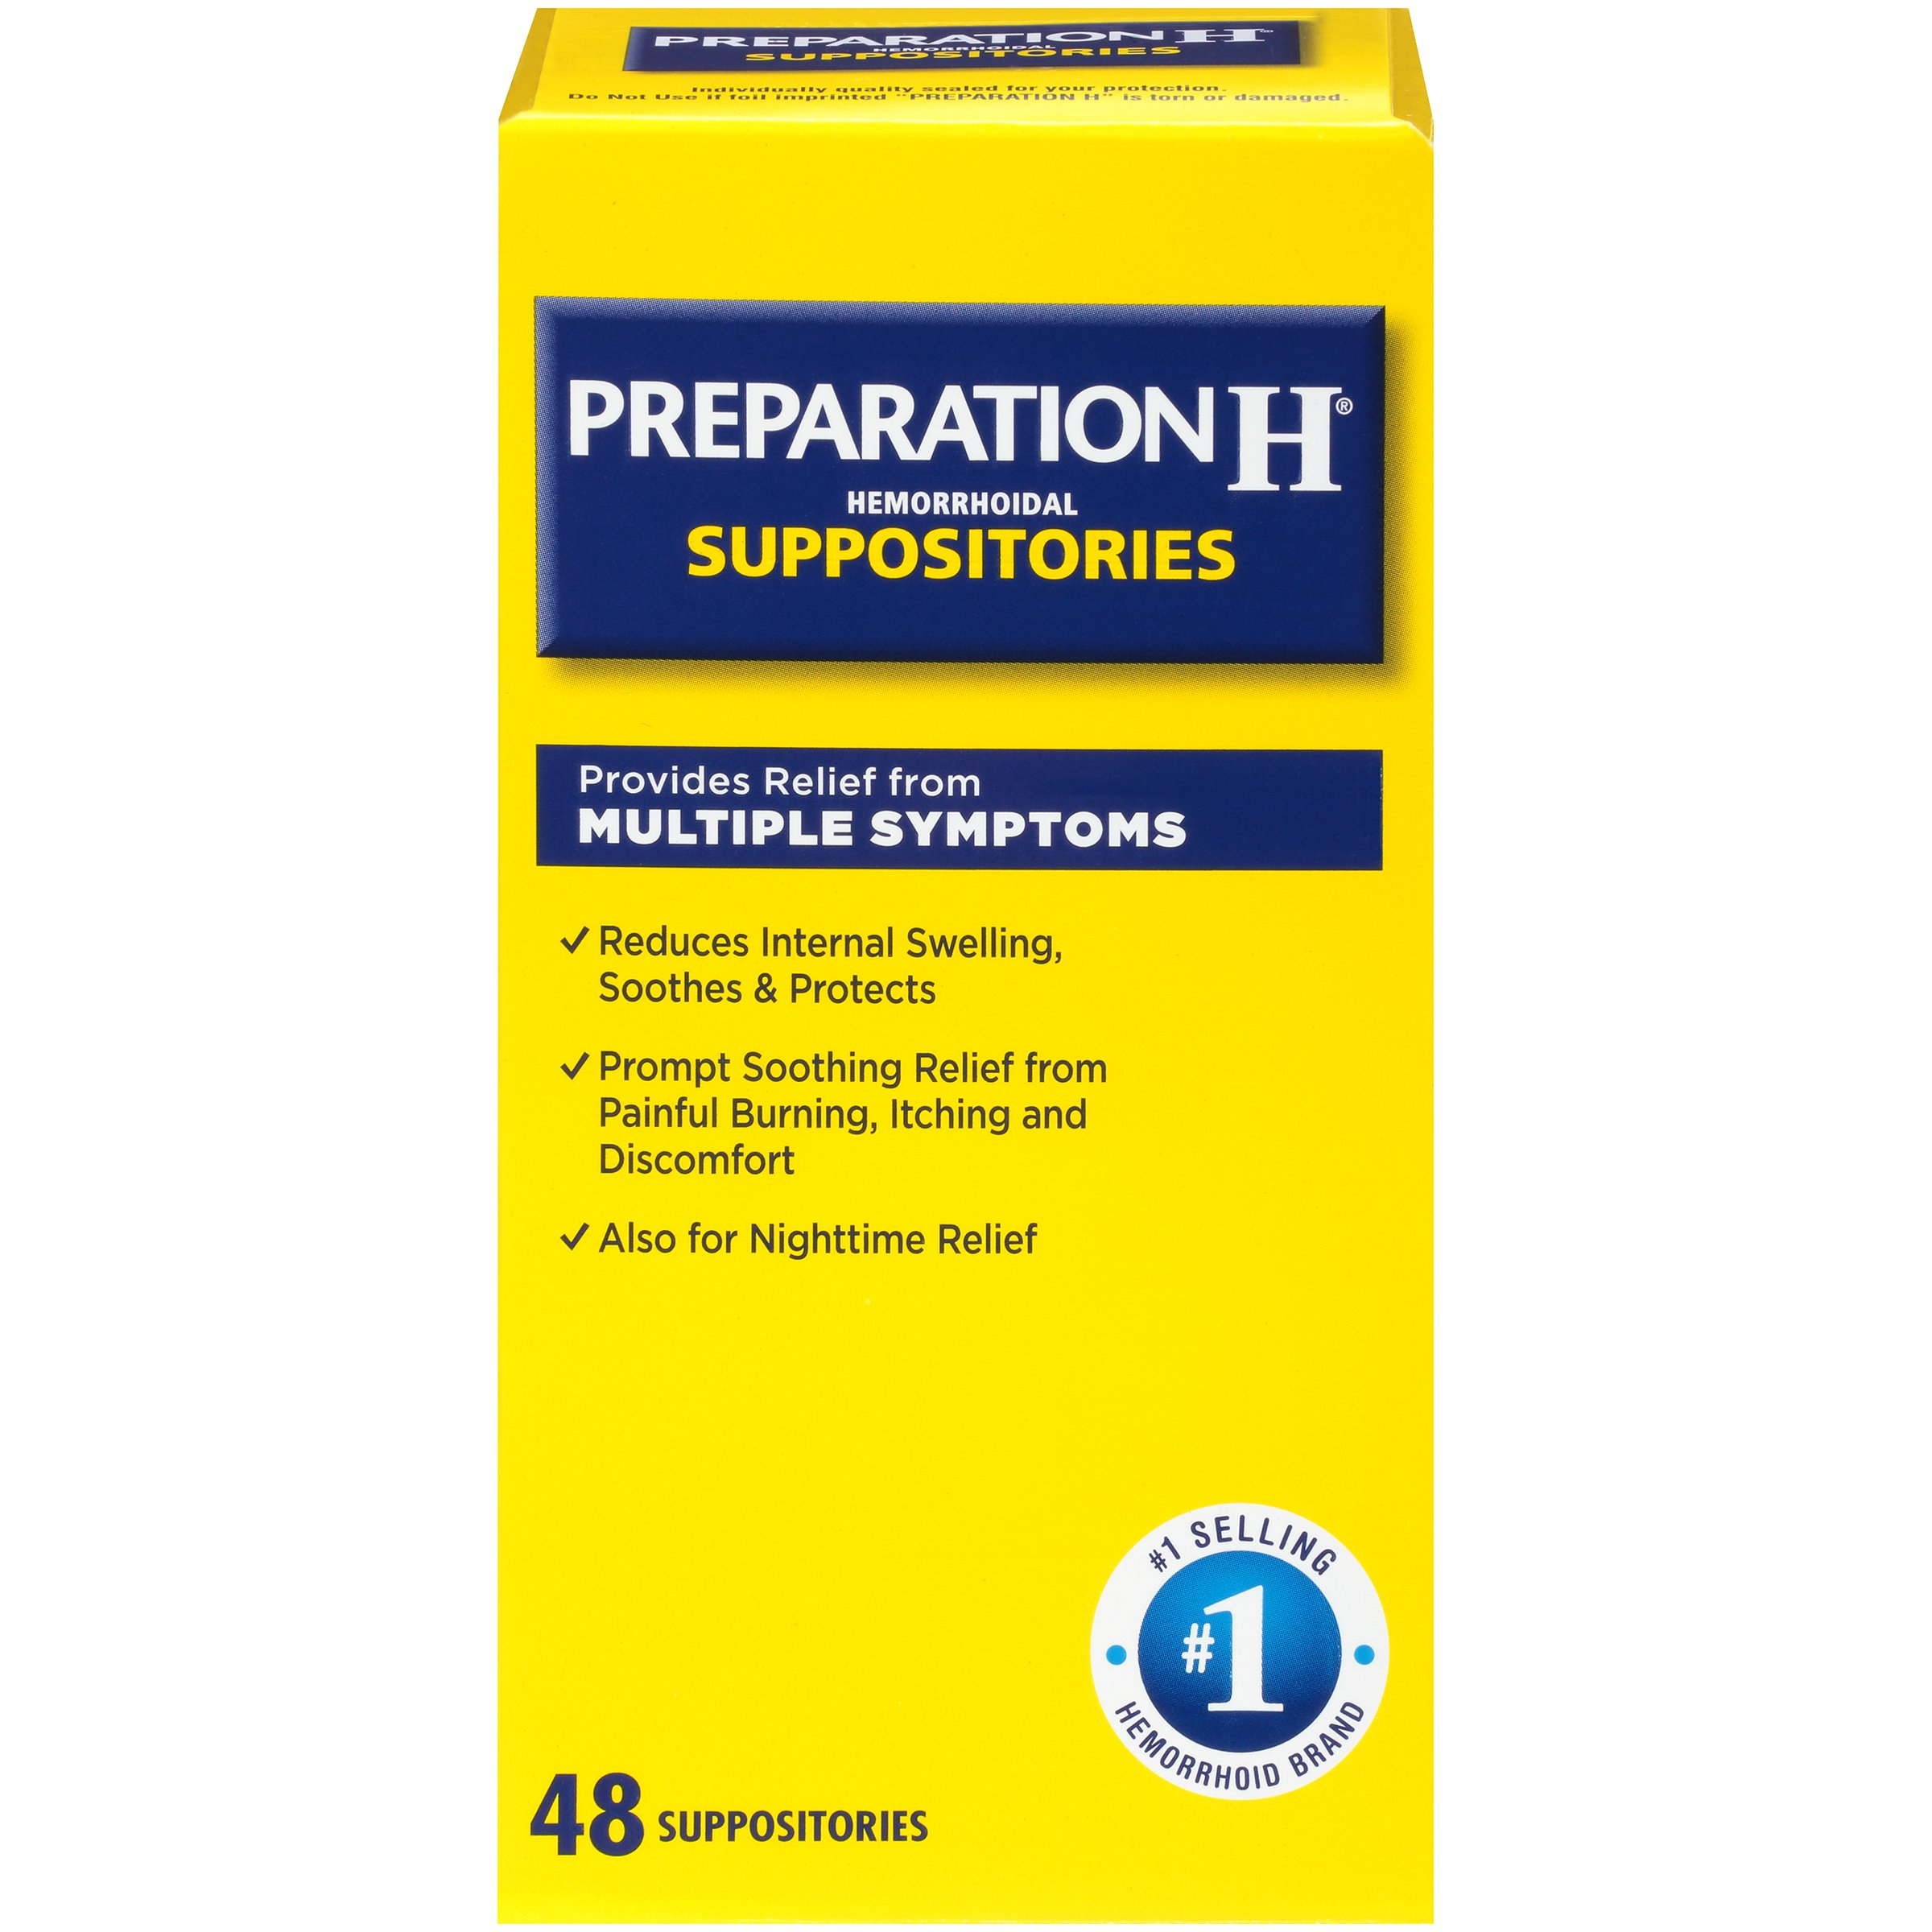 Preparation H Hemorrhoid Symptom Treatment Suppositories, Burning, Itching and Discomfort Relief (48 Count) by Preparation H